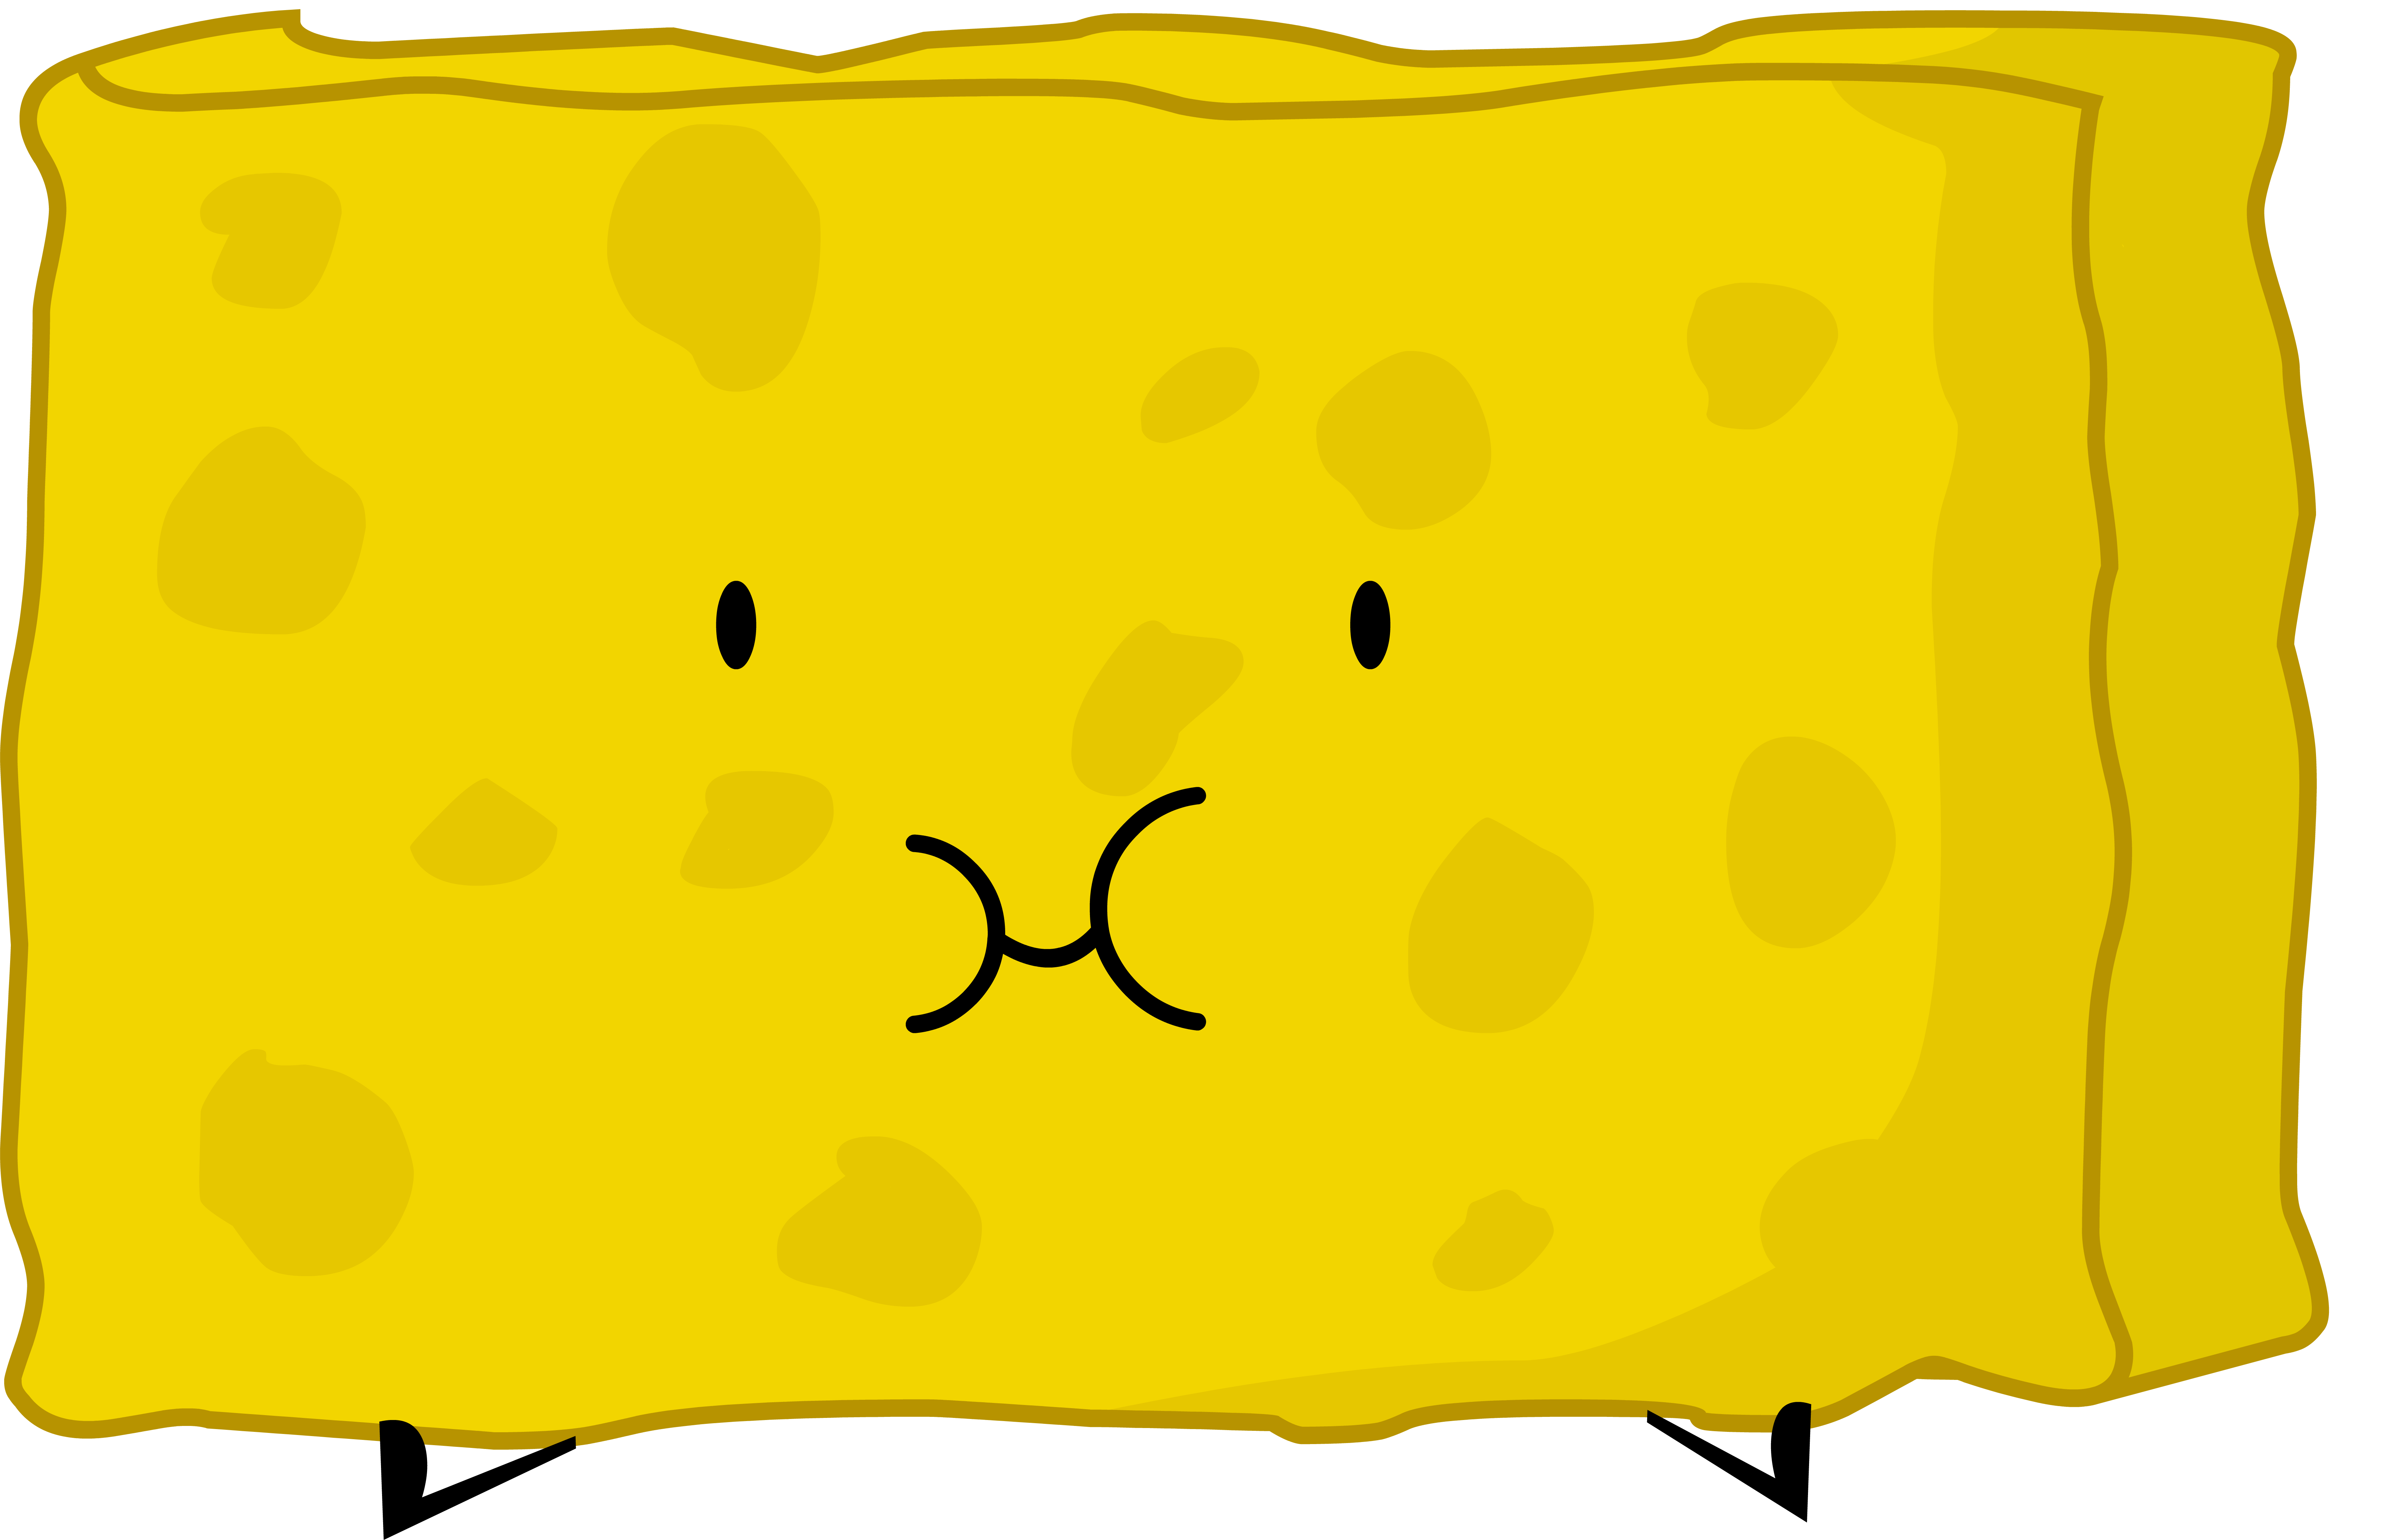 File:Spongy on Color Life Cycle 19